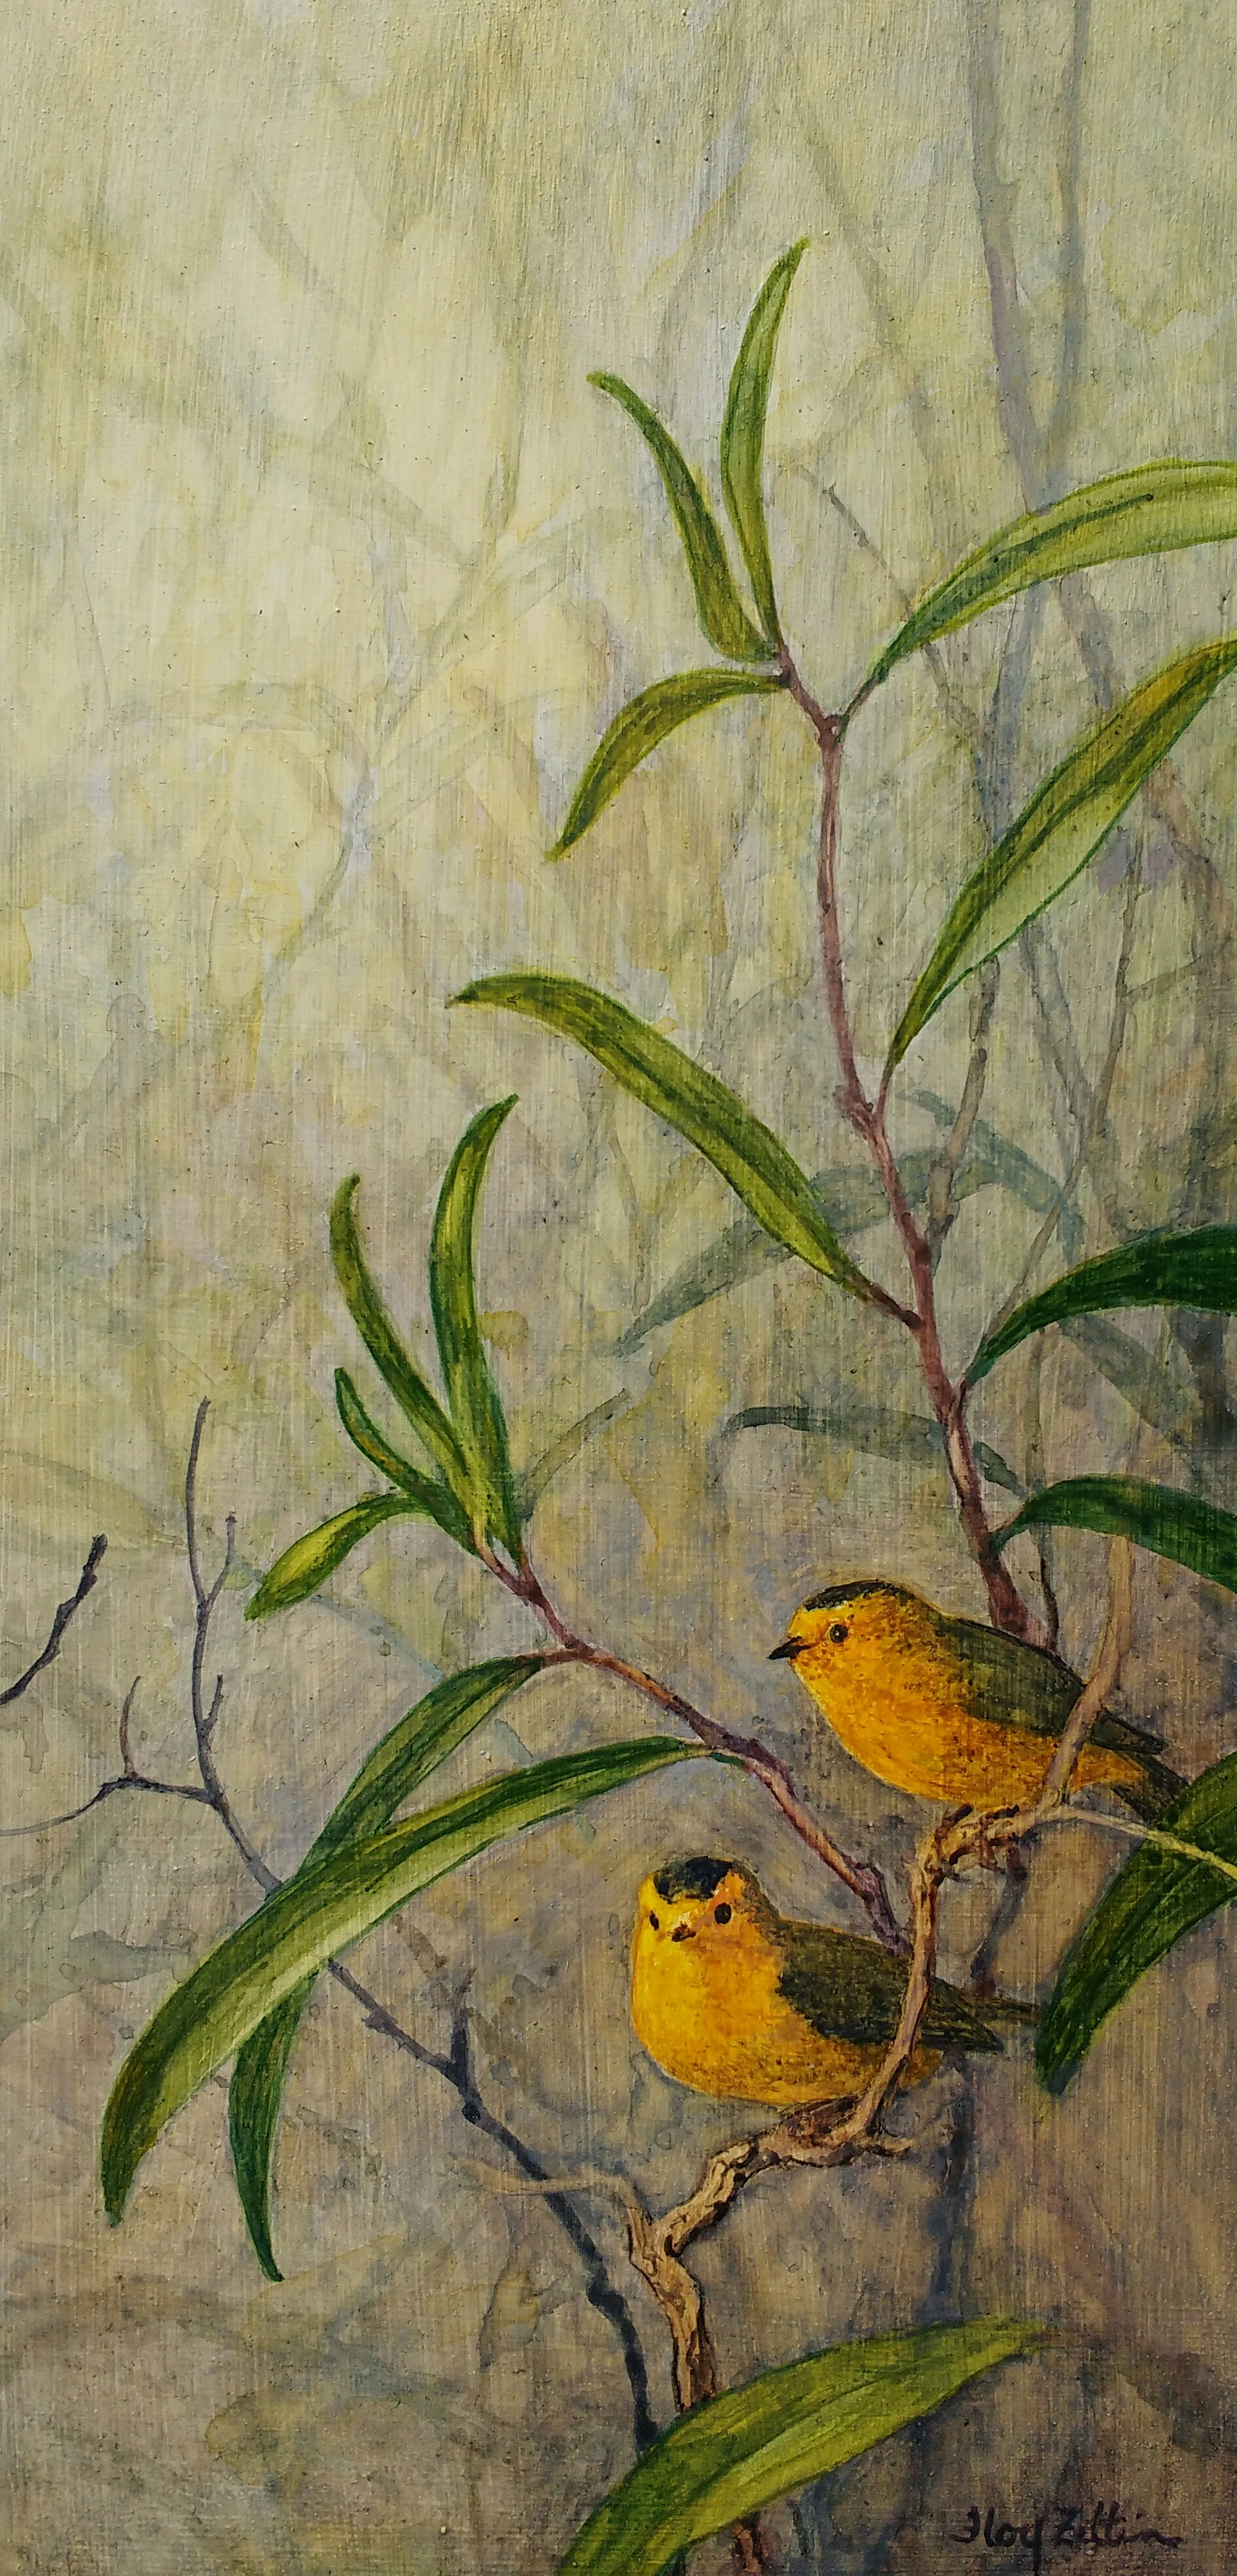 "Wilson's Warblers 12"" x 6"" watercolor on wood panel 2107"